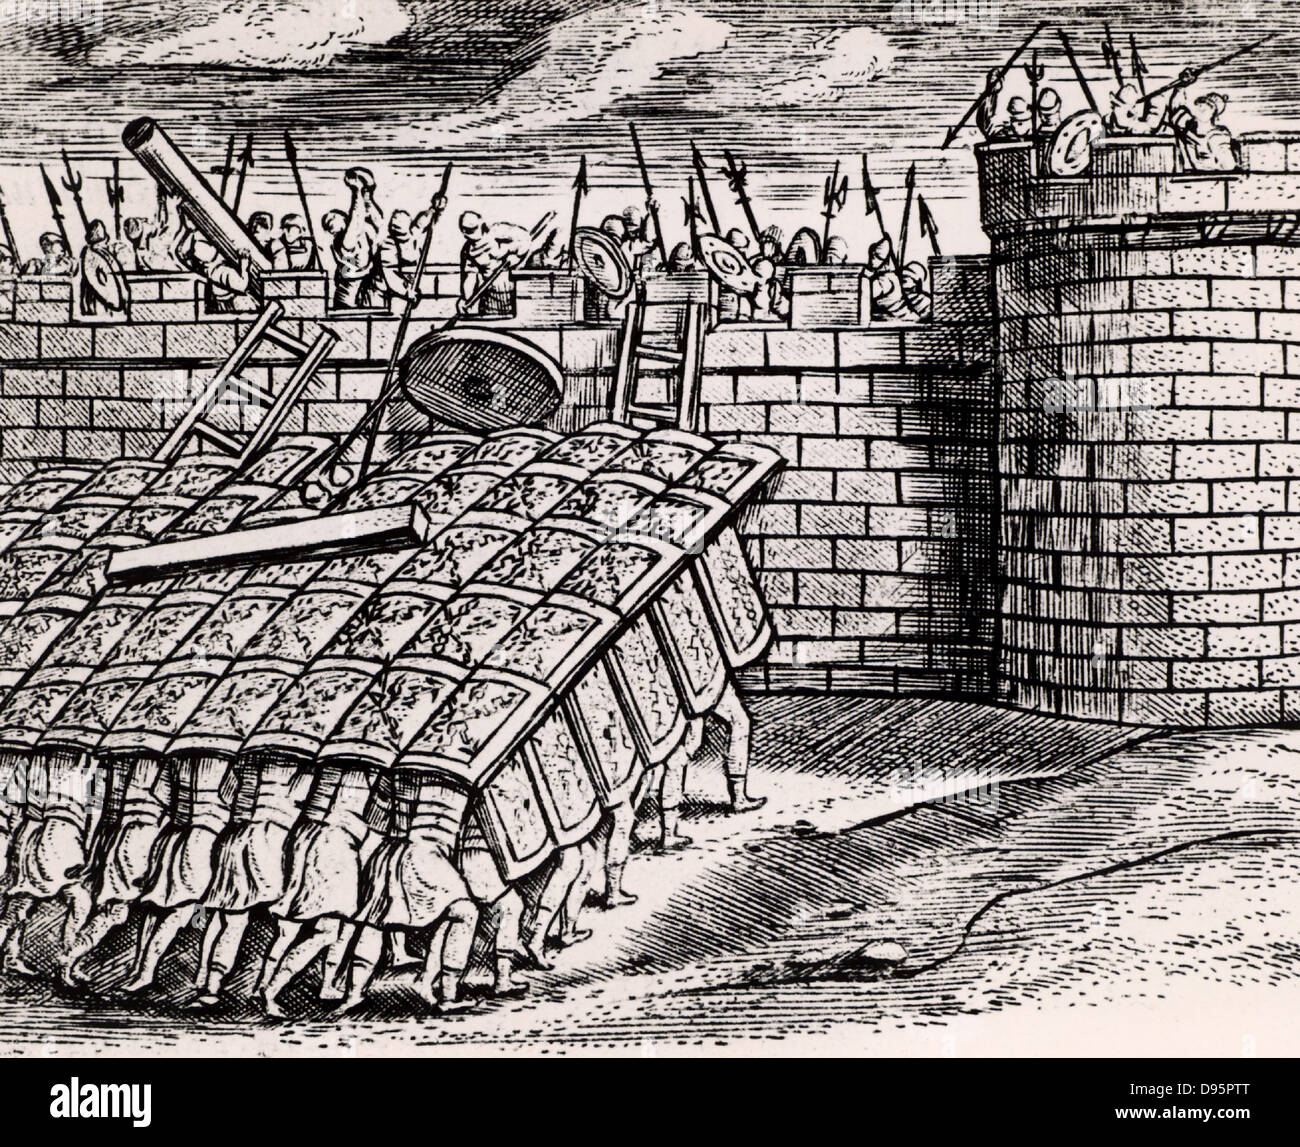 Roman soldier forming a 'tortoise' with their shields, thus enabling them to approach the walls of a besieged - Stock Image